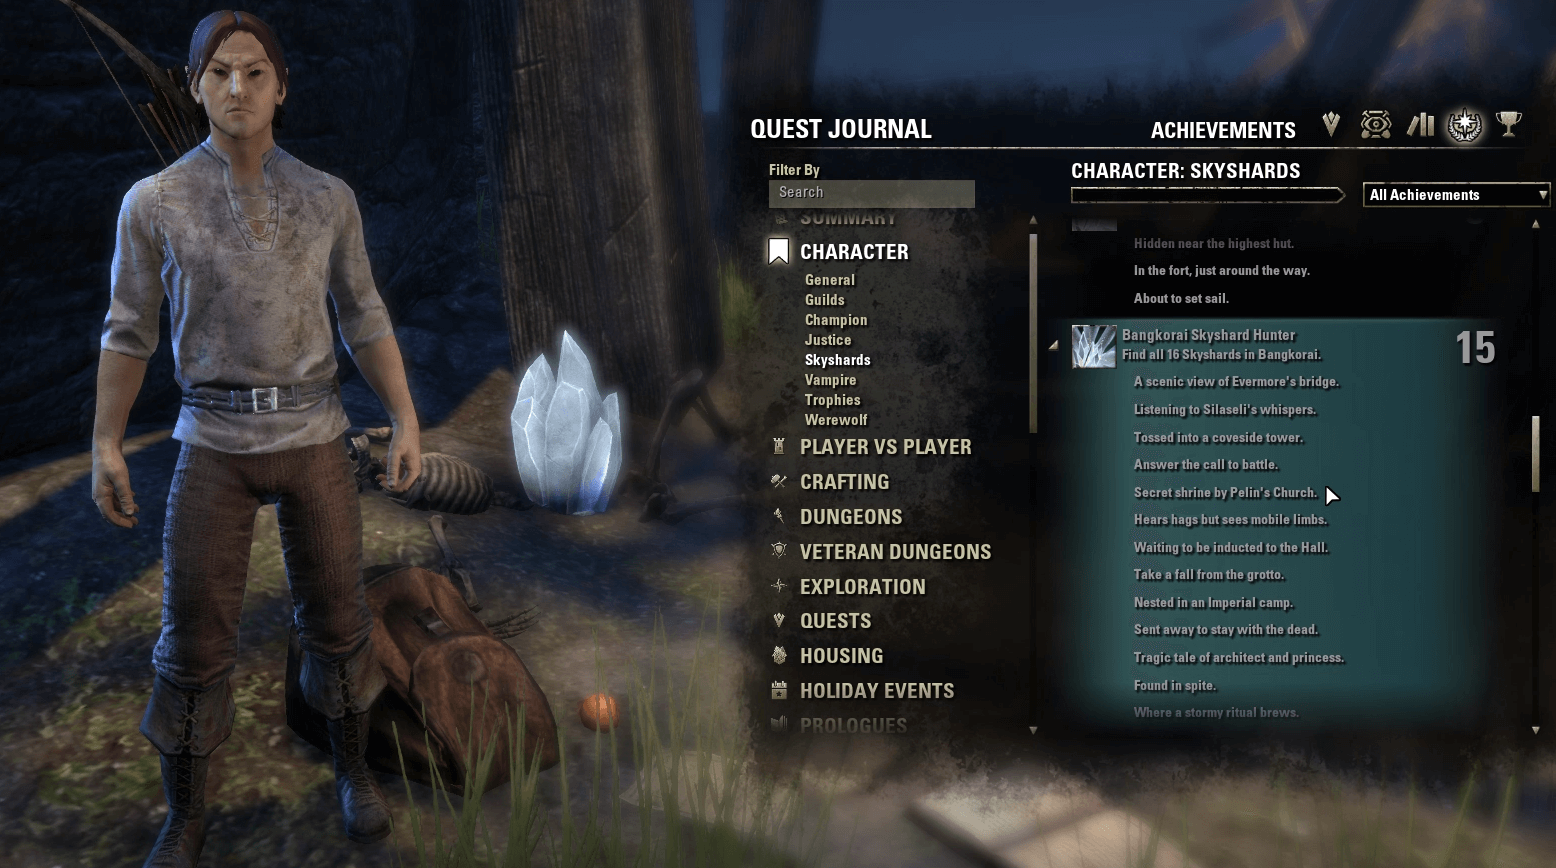 You can track the Skyshards you've already earned in the achievements menu of your journal.